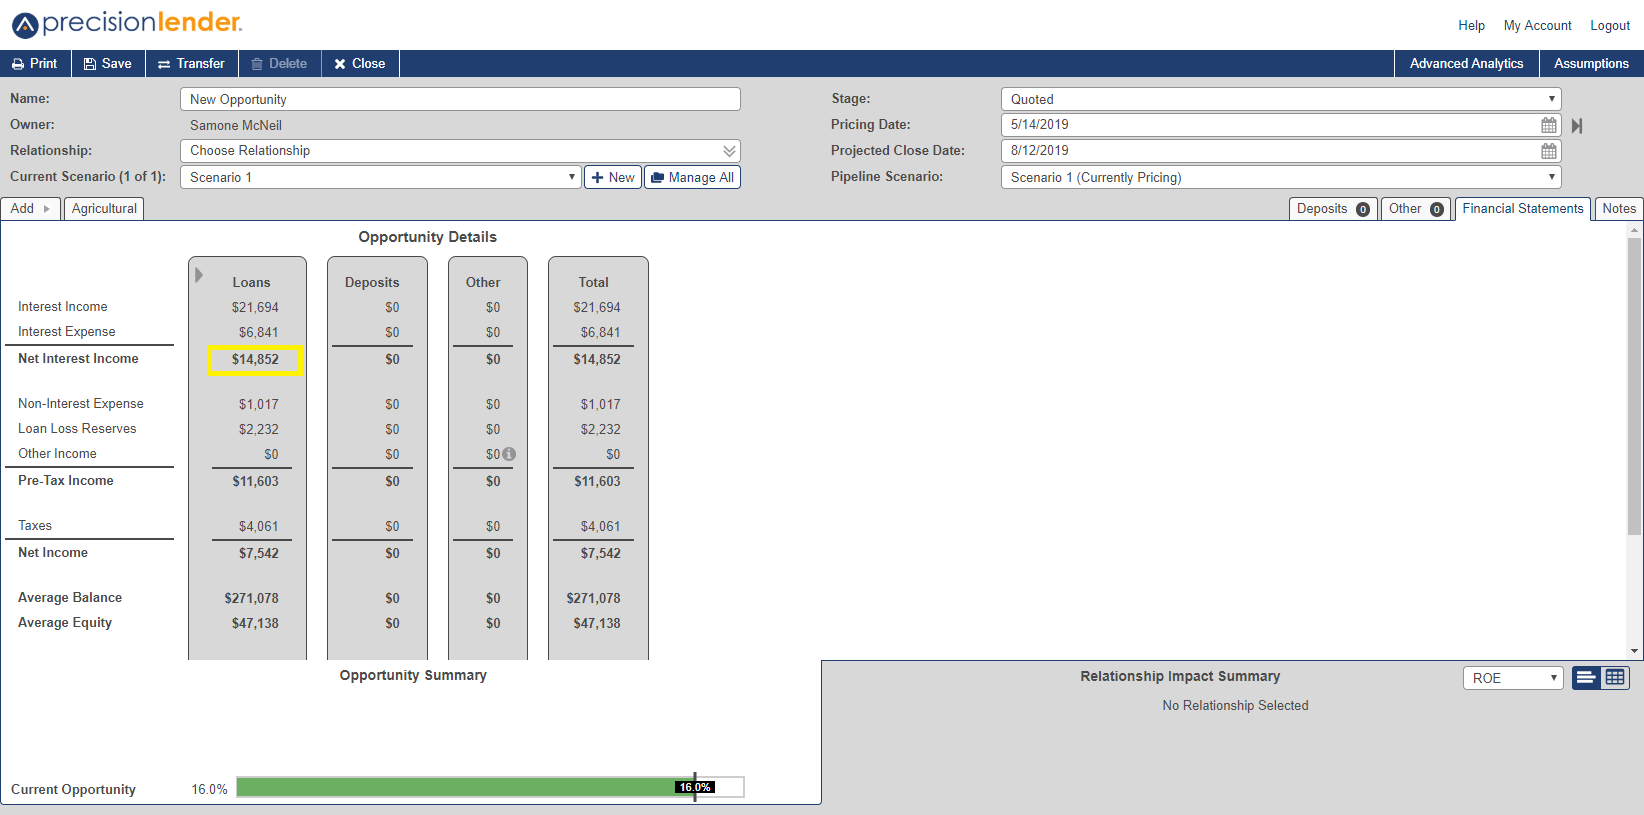 Shows the Net Interest Income in the Loan column on the financial statement